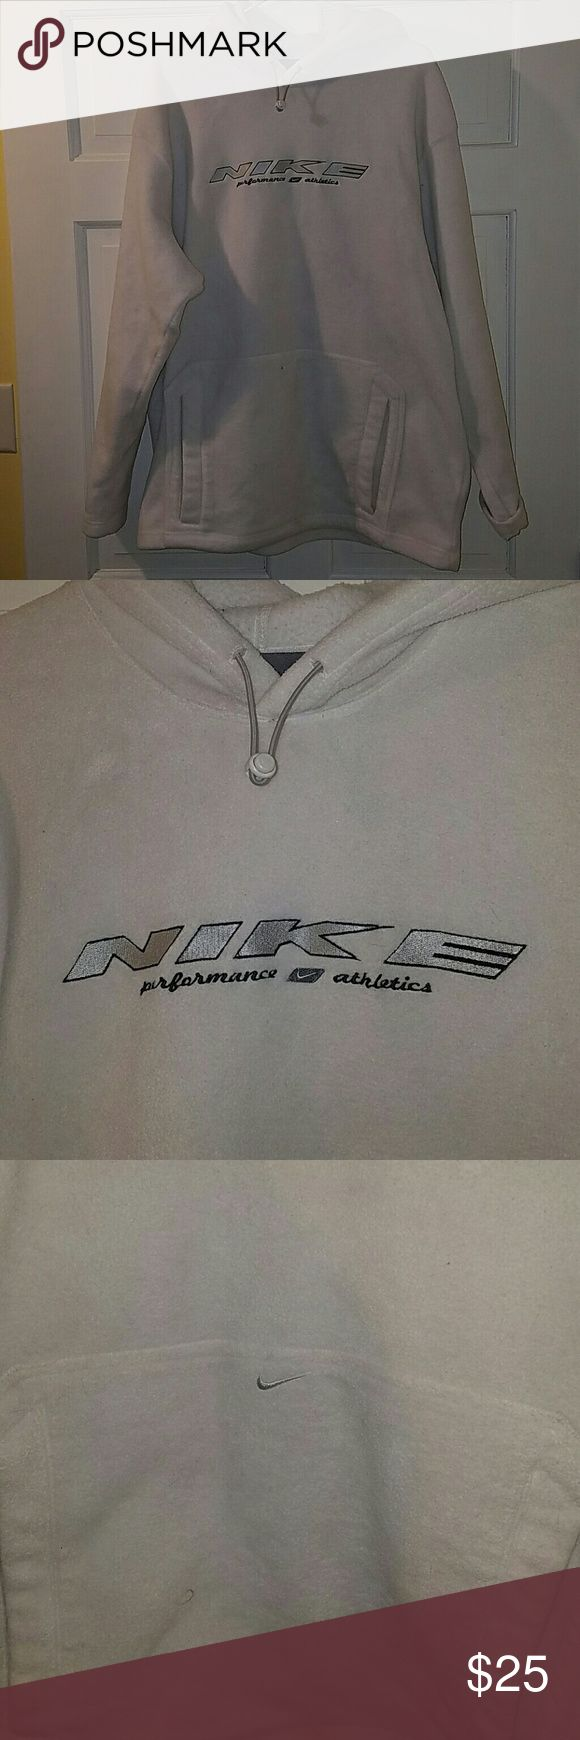 Nike Fleece Hoodie Good to Excellent condition. Bright white, no stains or discoloration that I can tell. Nike Shirts Sweatshirts & Hoodies